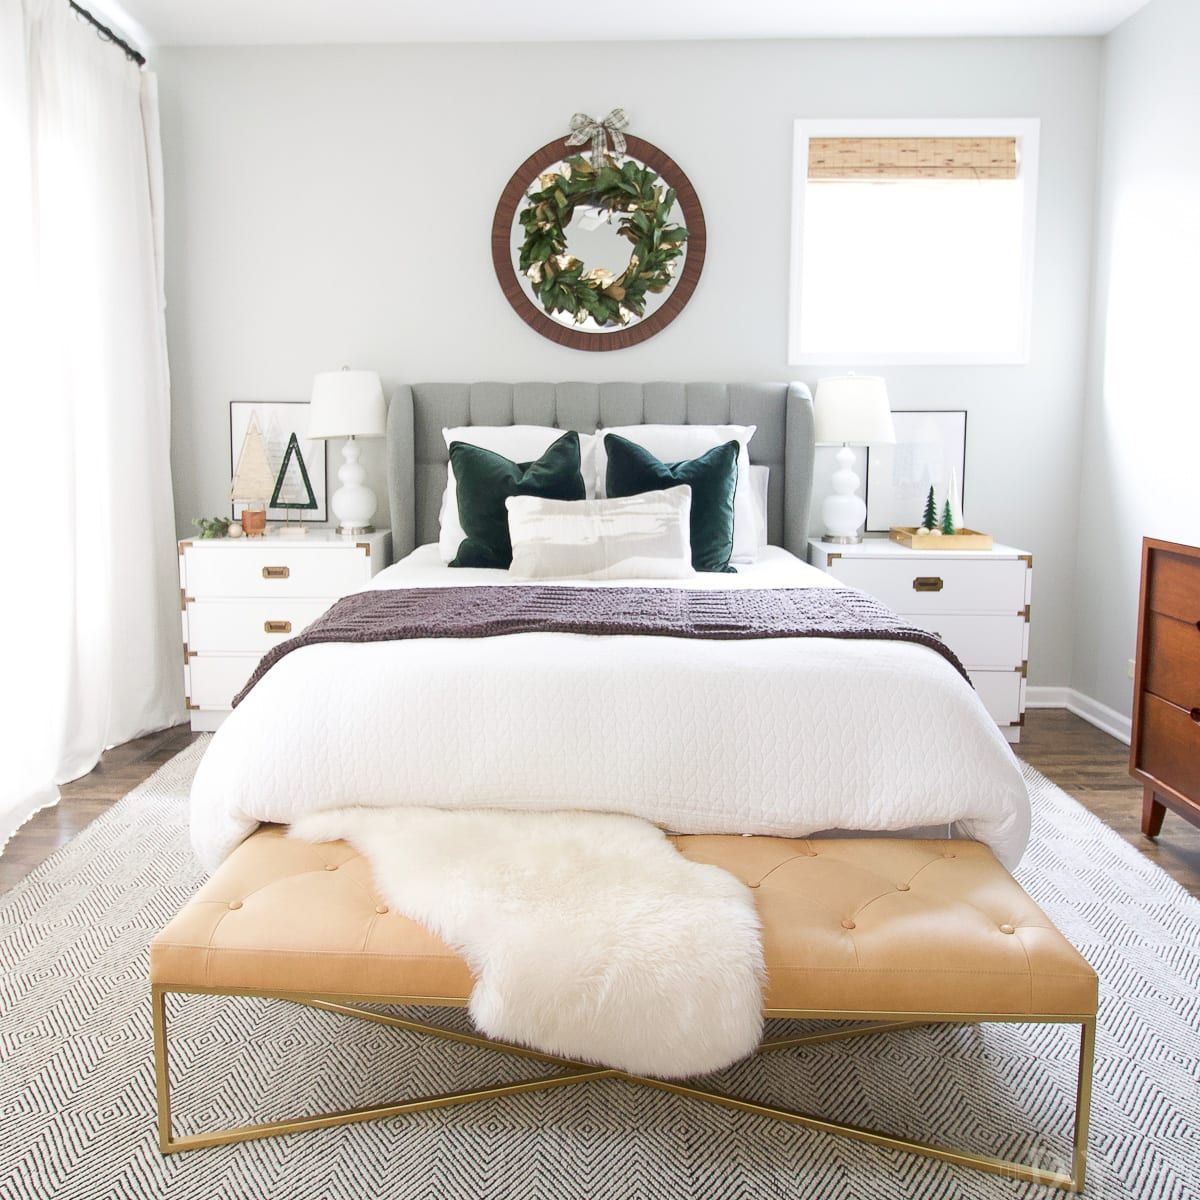 How to Decorate your Bedroom for the Holidays | Home, Home ...